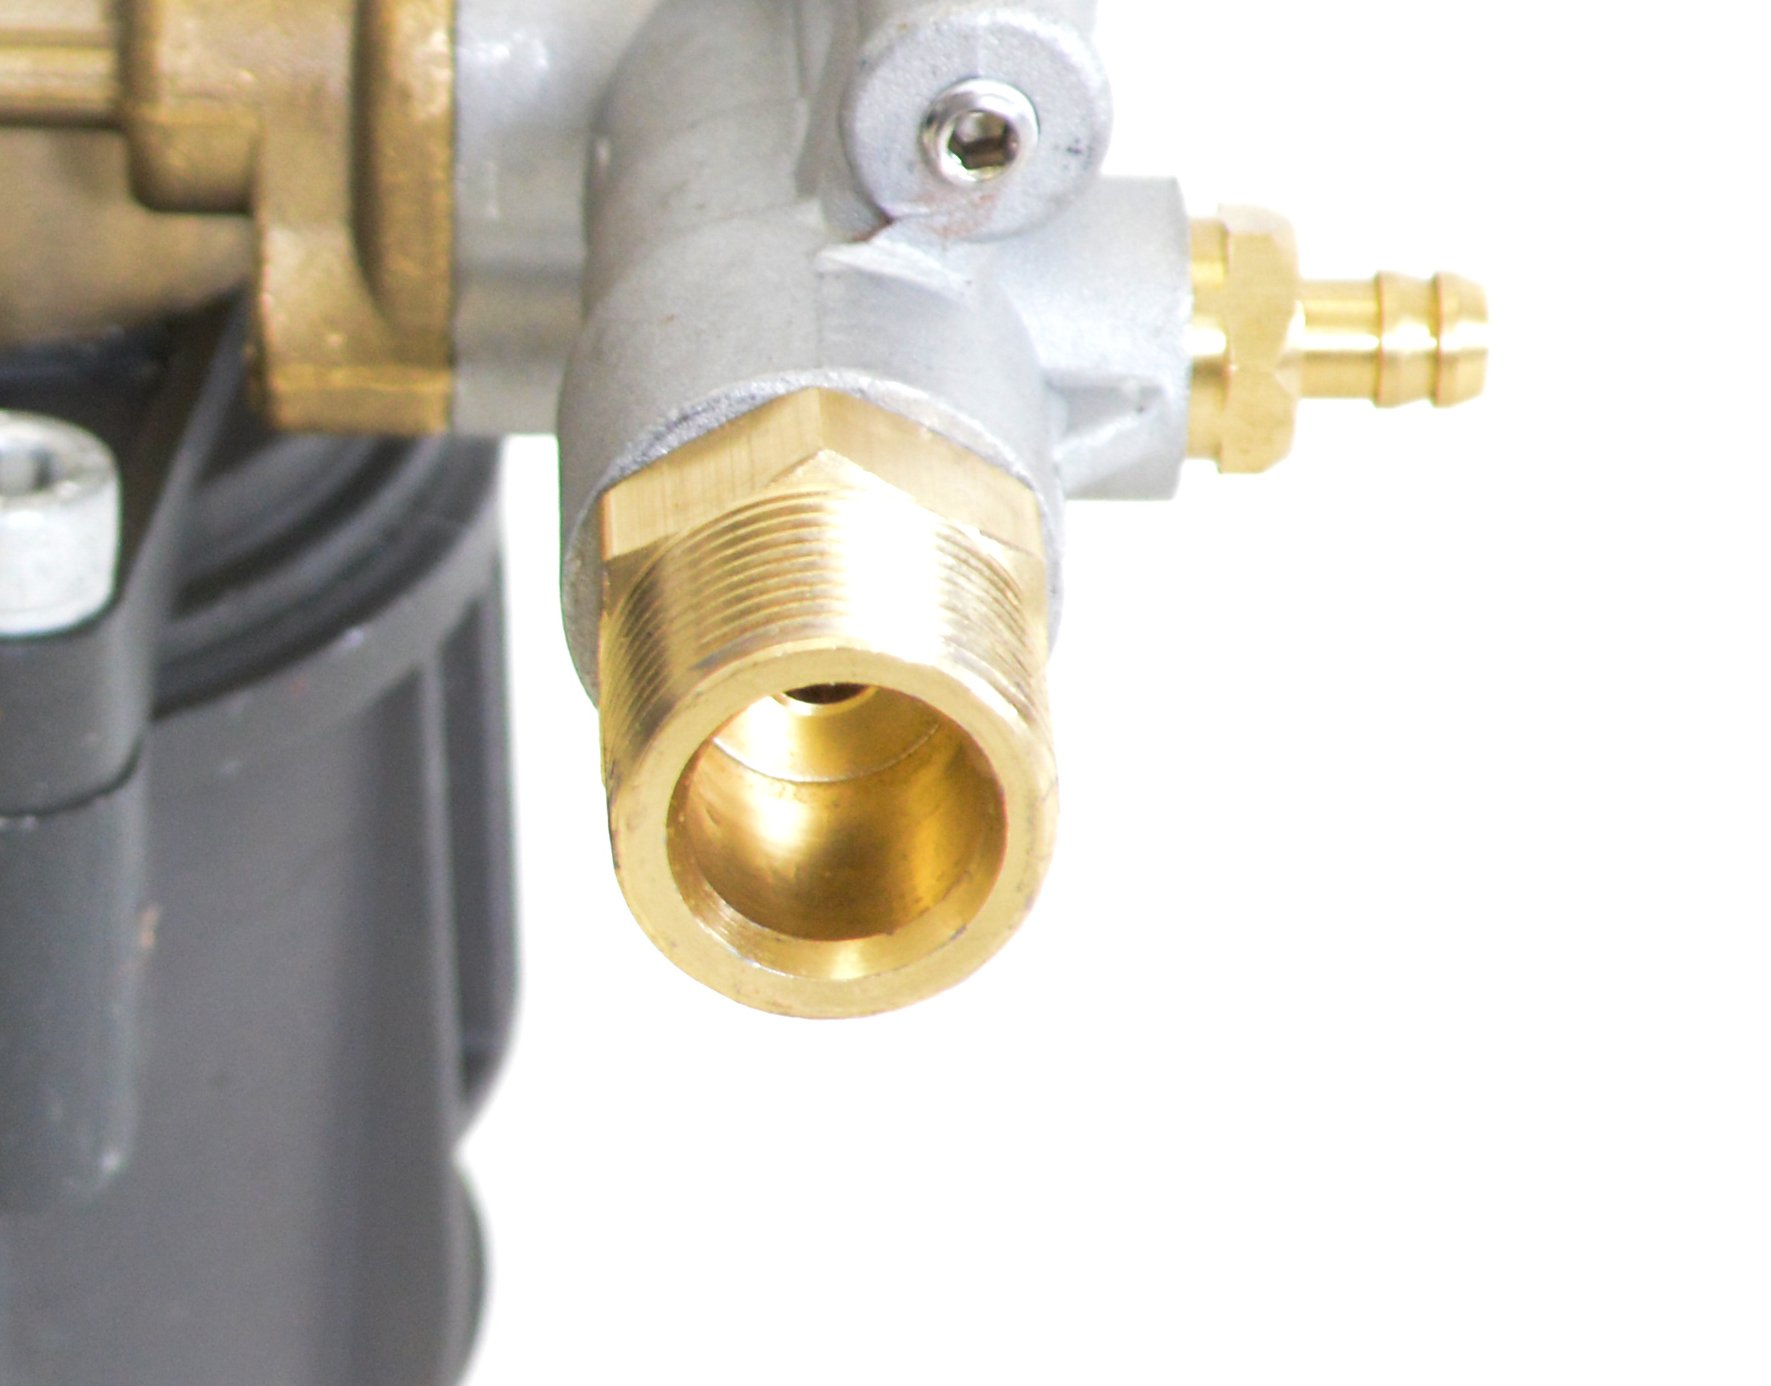 SIMPSON Cleaning 90029 Axial Cam Horizontal Pressure Washer Replacement Pump 8.6CAH12B 3100 PSI @ 2.5 GPM with Brass Head and PowerBoost Technology by Simpson Cleaning (Image #7)